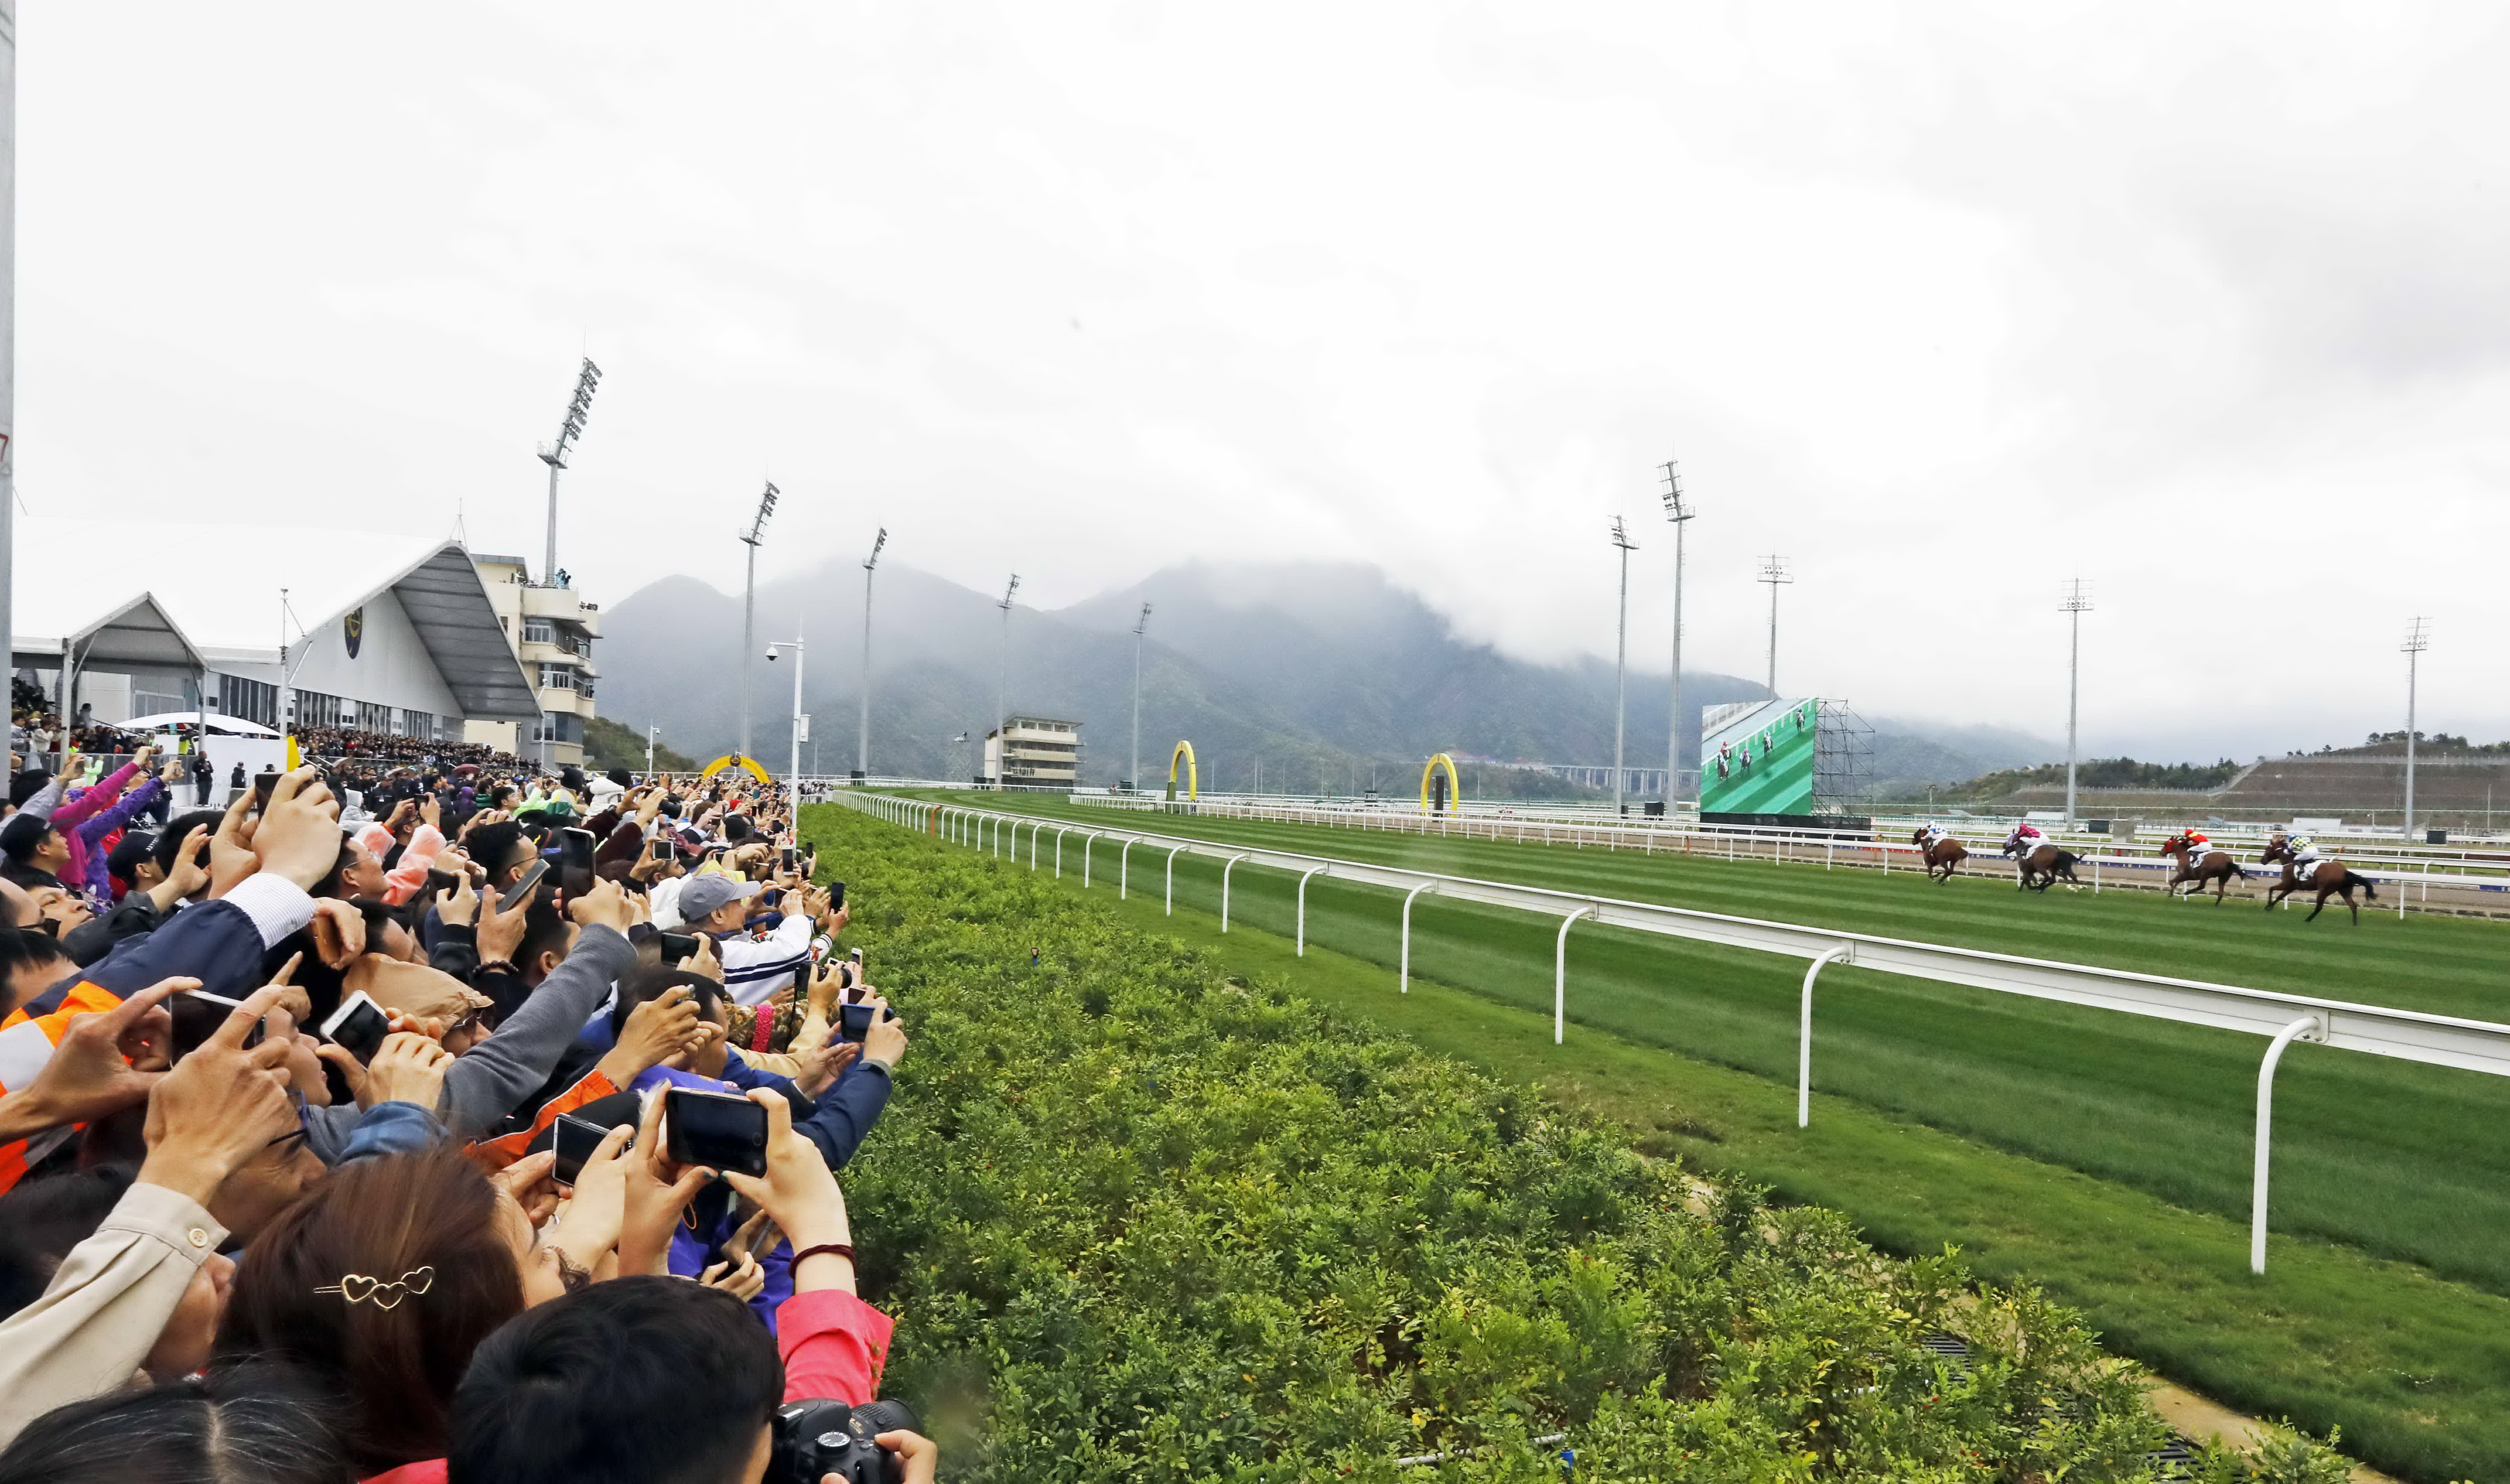 It was estimated that 95 per cent of the 3,500 crowd had never been racing before, but they certainly seemed engrossed by the action. Photo: Hong Kong Jockey Club